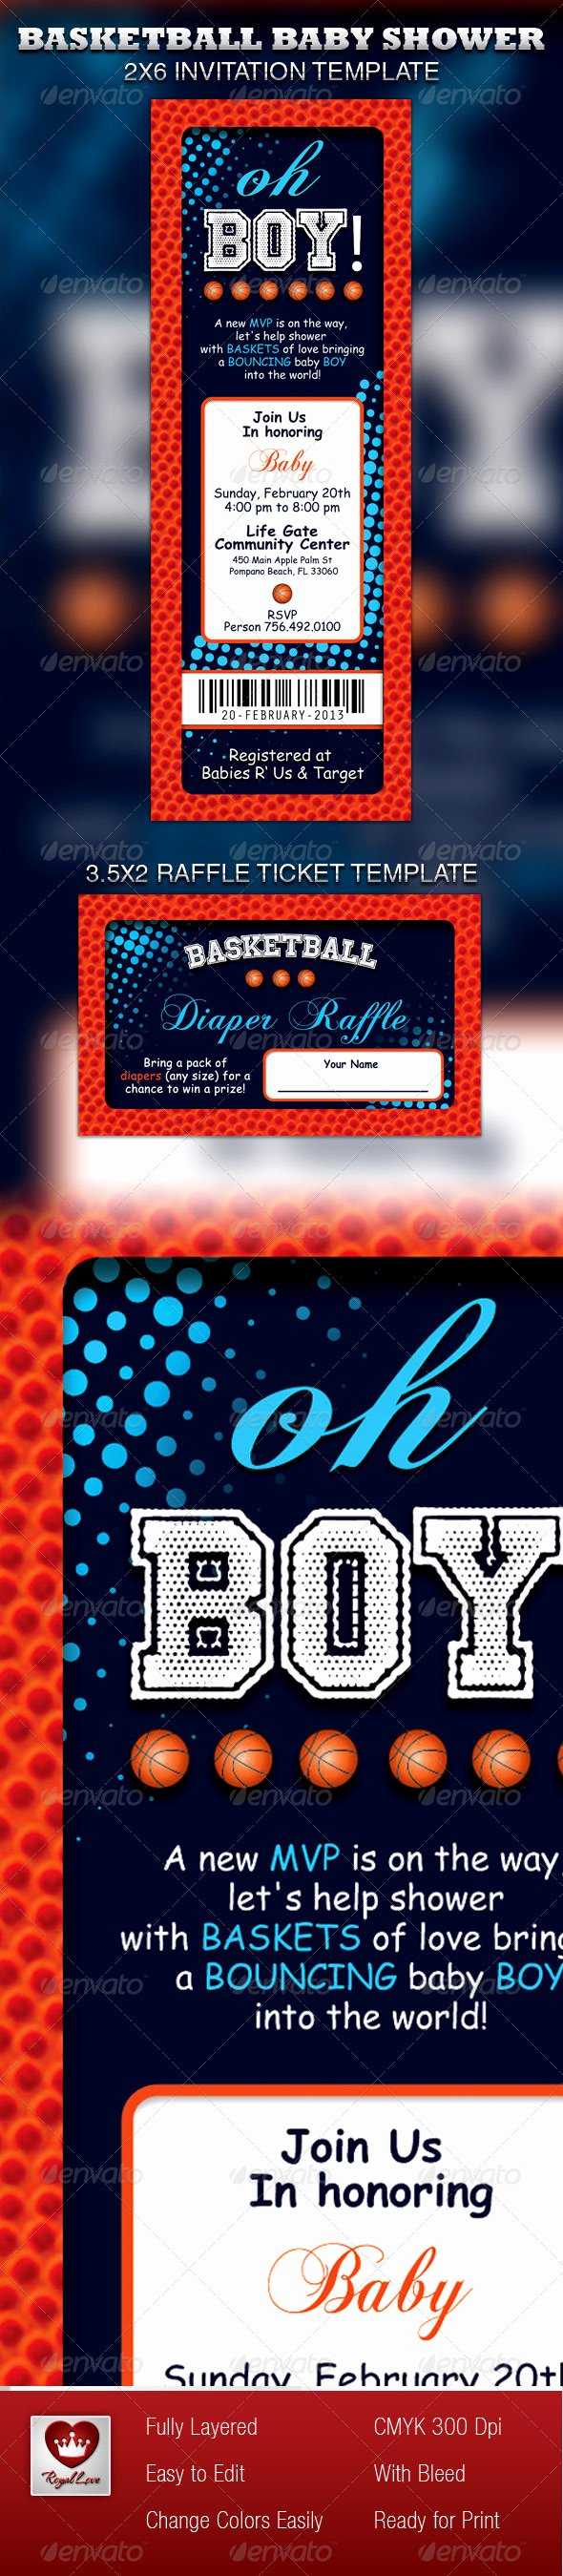 Basketball Ticket Template Lovely Basketball Baby Shower Invitation & Raffle Ticket by